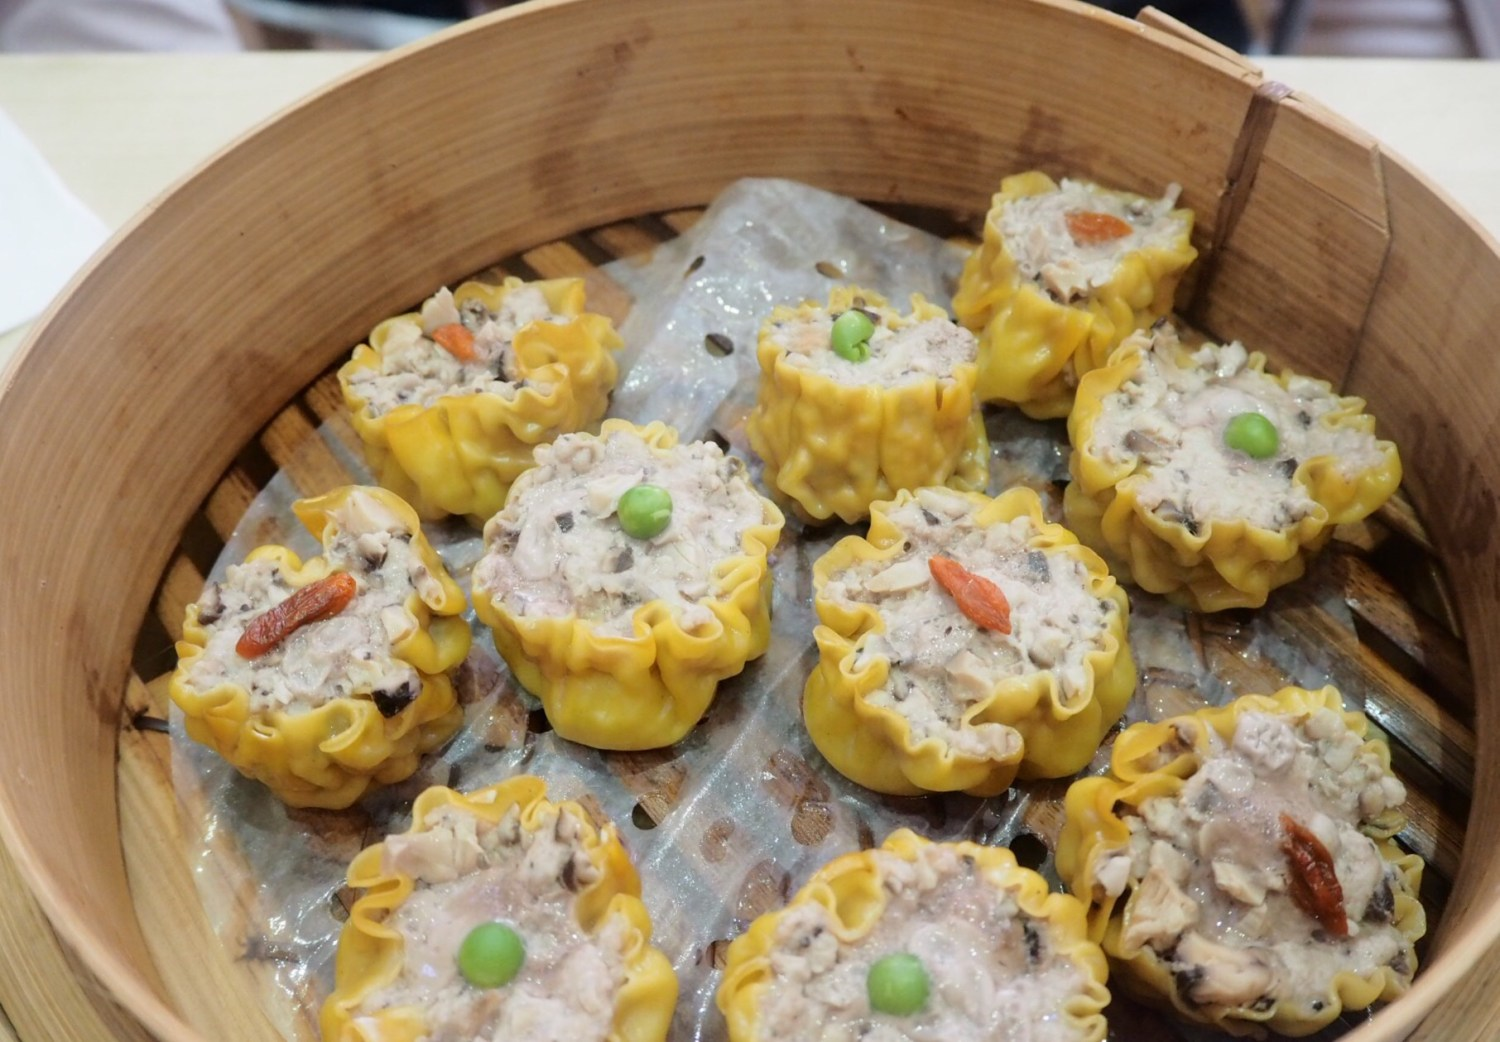 Cooked Sui Mai in a steamed basked